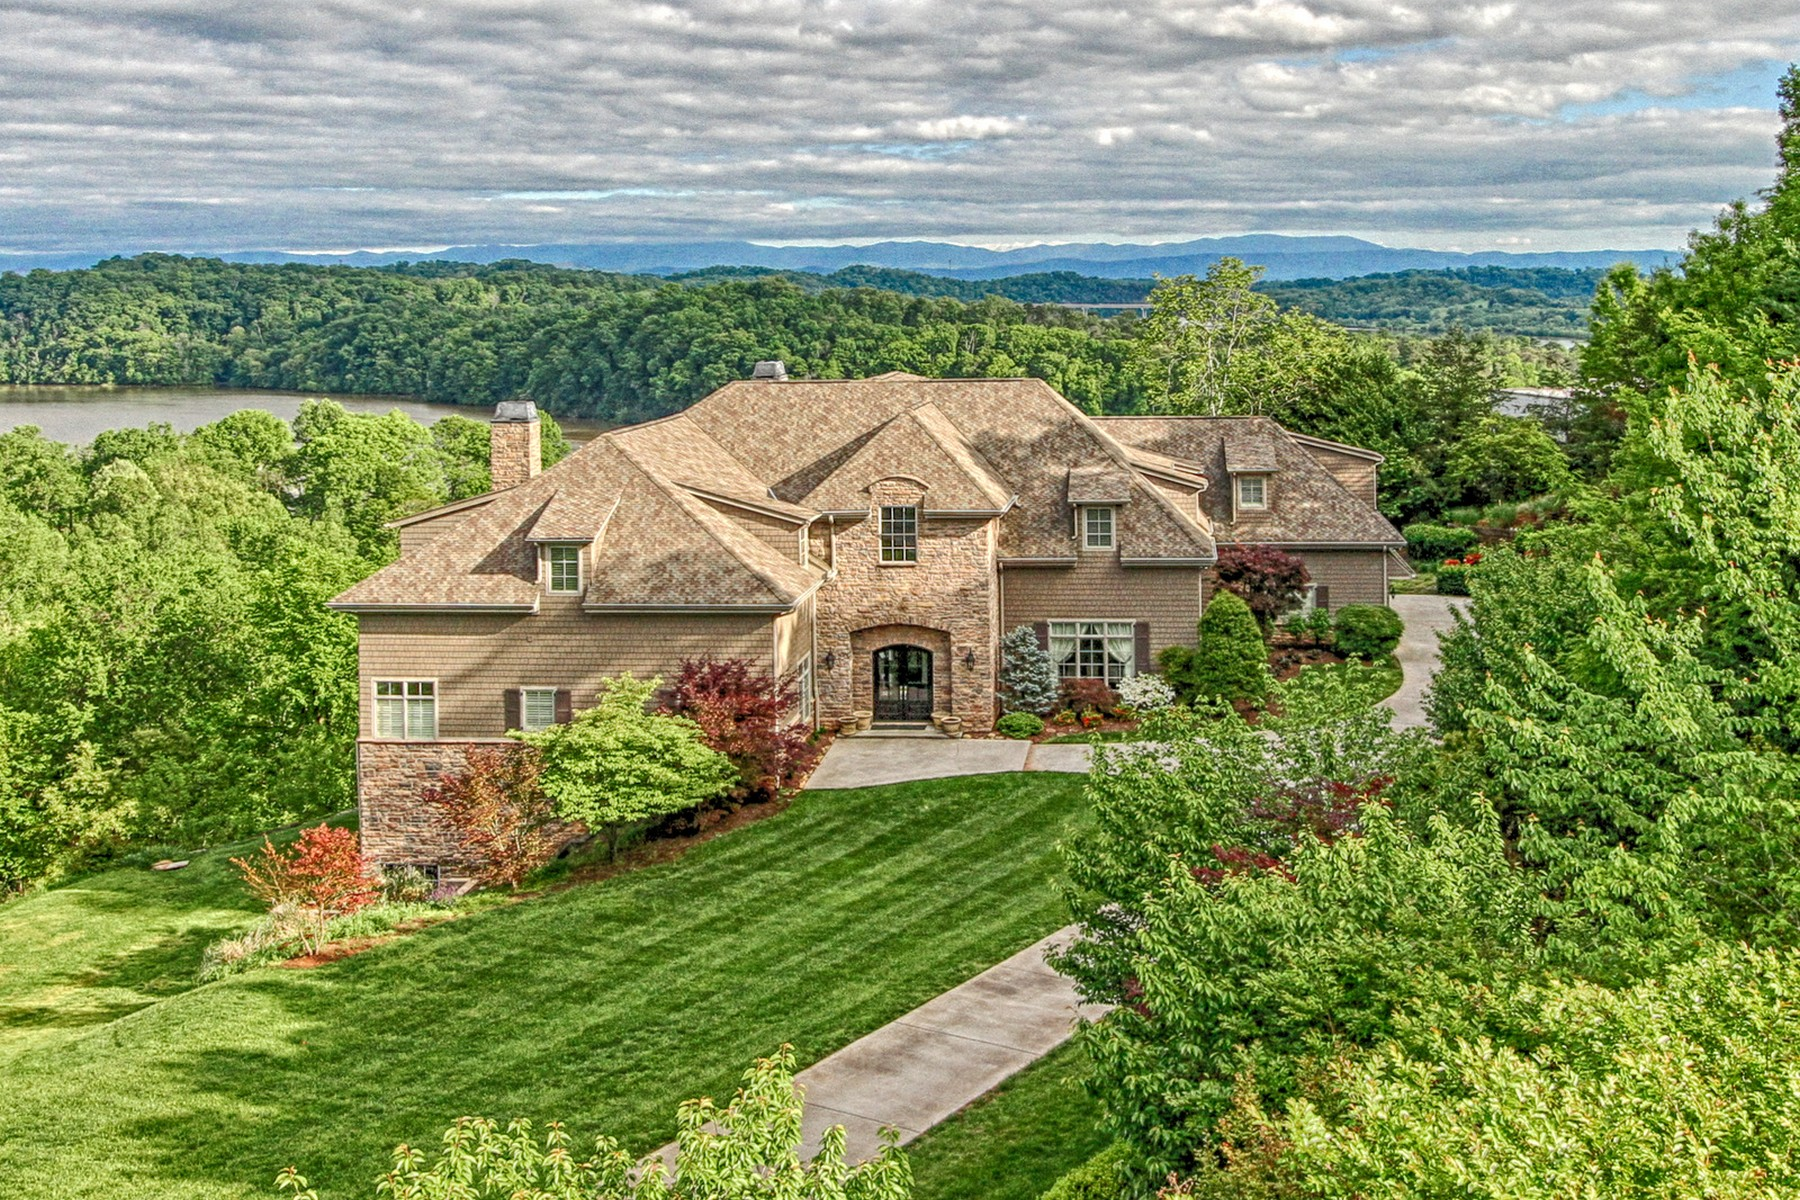 Single Family Home for Sale at Stunningly Elegant Estate 1928 Rudder Lane, Knoxville, Tennessee, 37917 United States